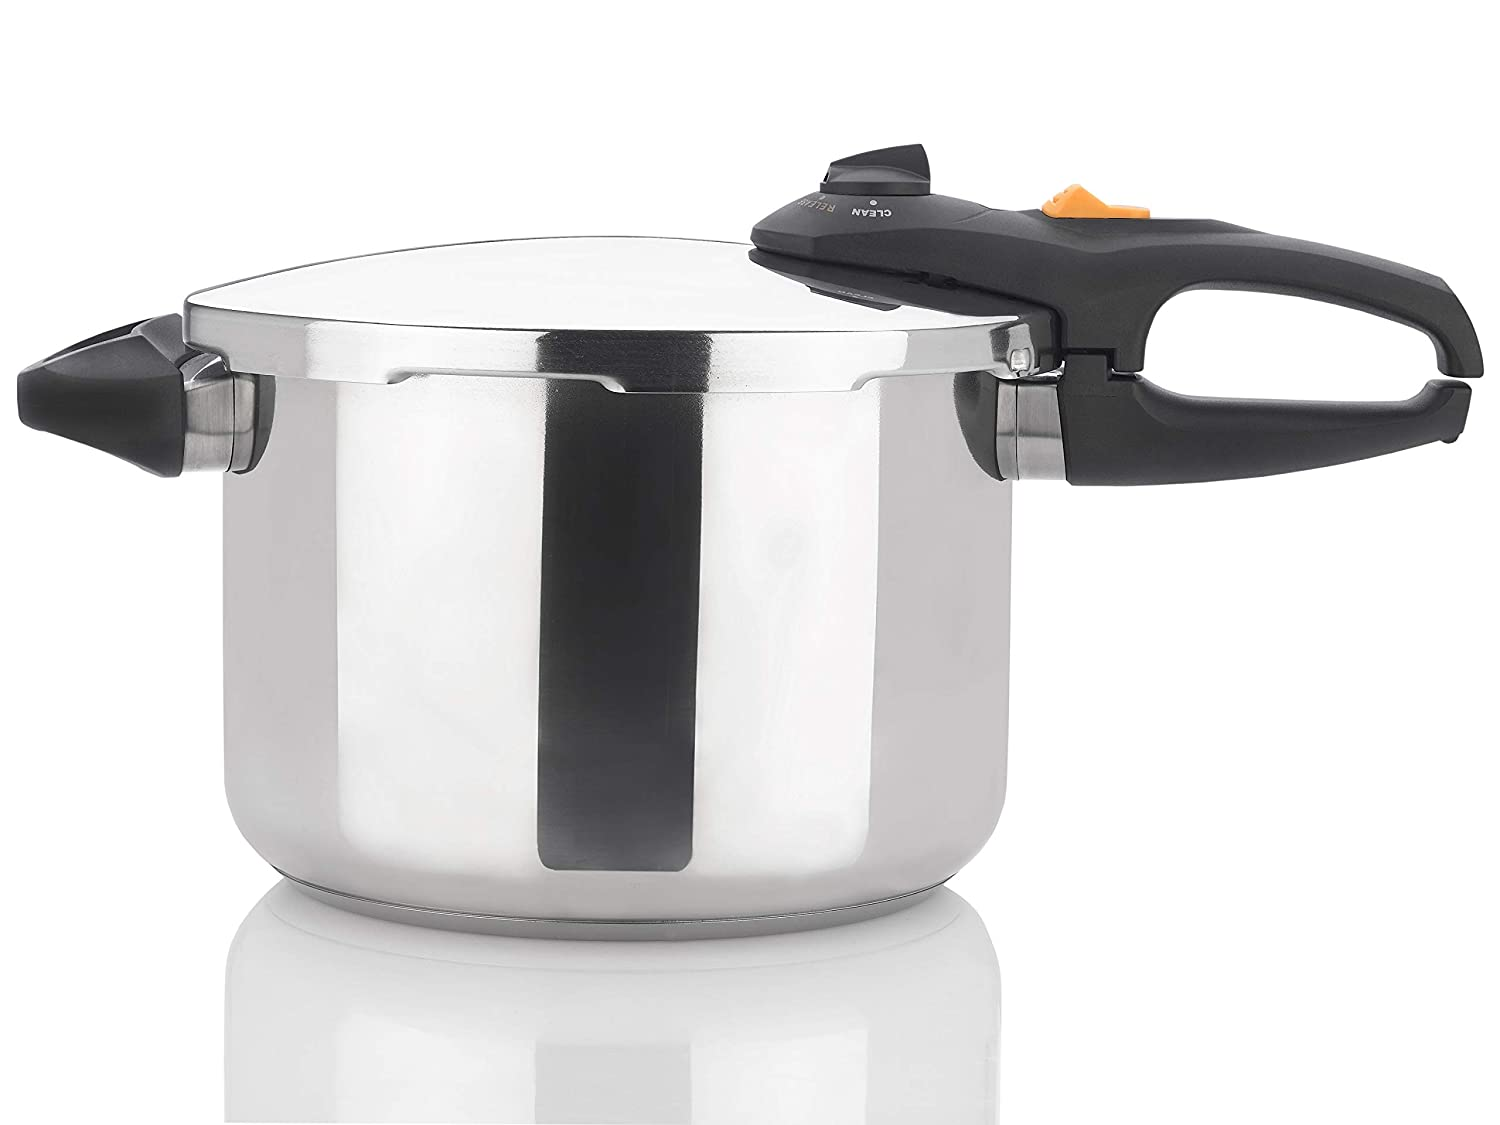 Zavor DUO 8.4 Quart Multi-Setting Pressure Cooker and Canner with Accessories - Polished Stainless Steel (ZCWDU03)